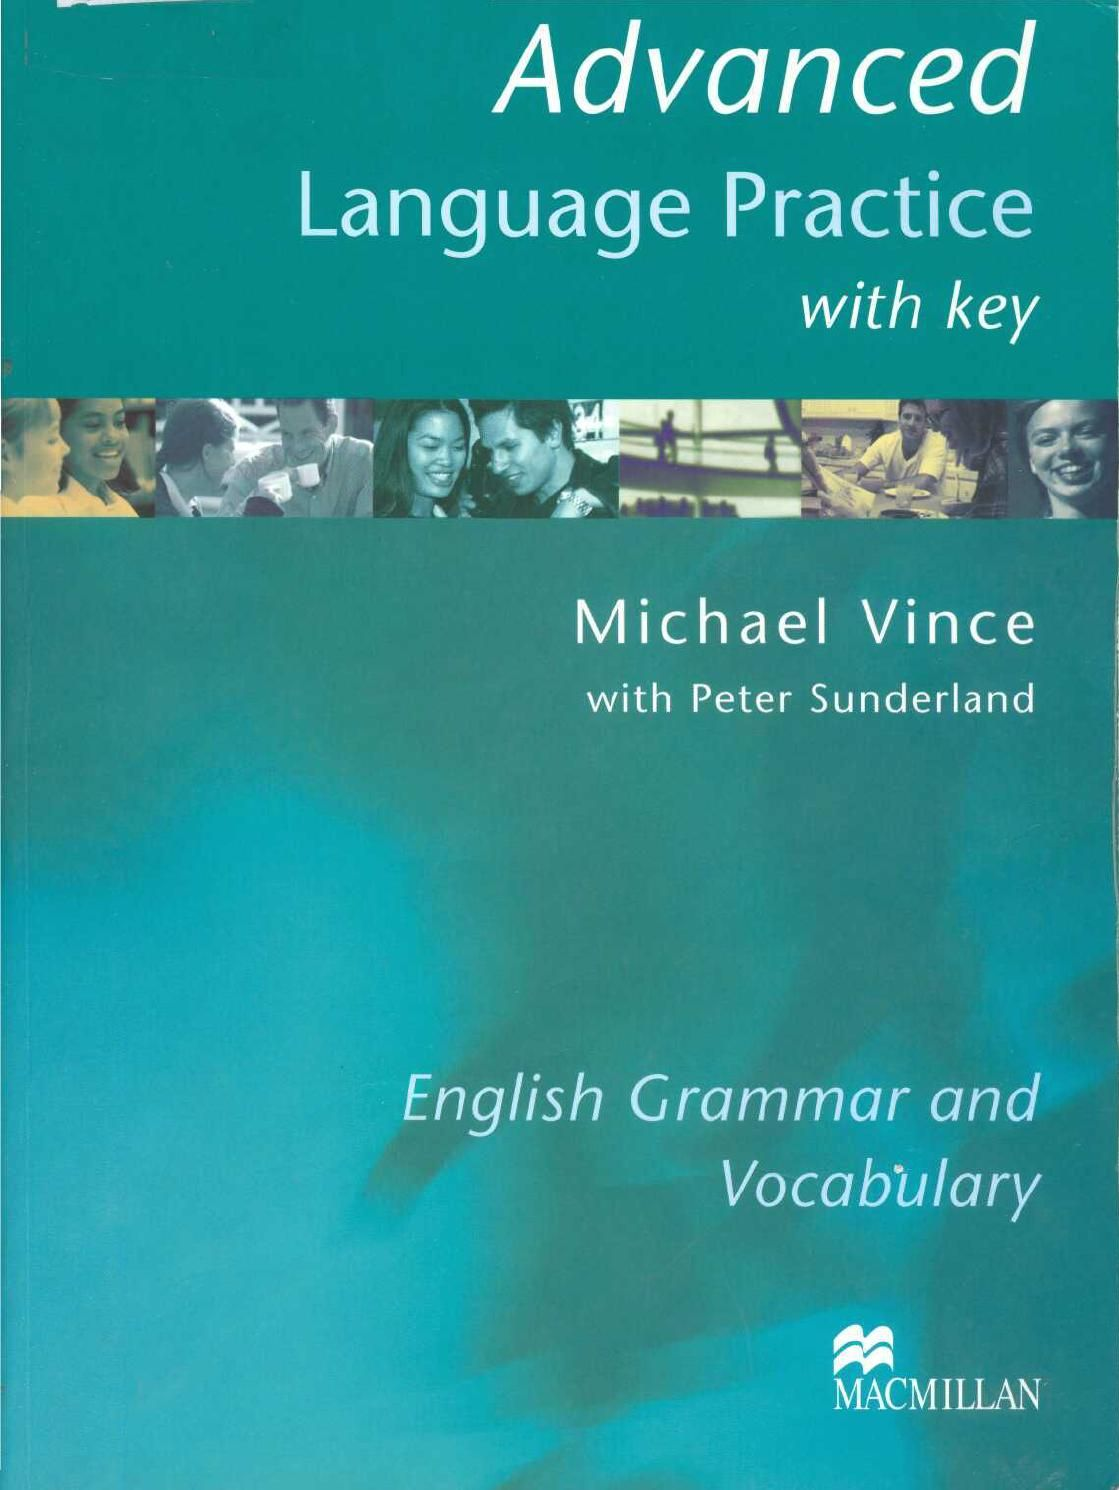 Libros De Macmillan Macmillan Advanced Language Practice With Key2 English Language